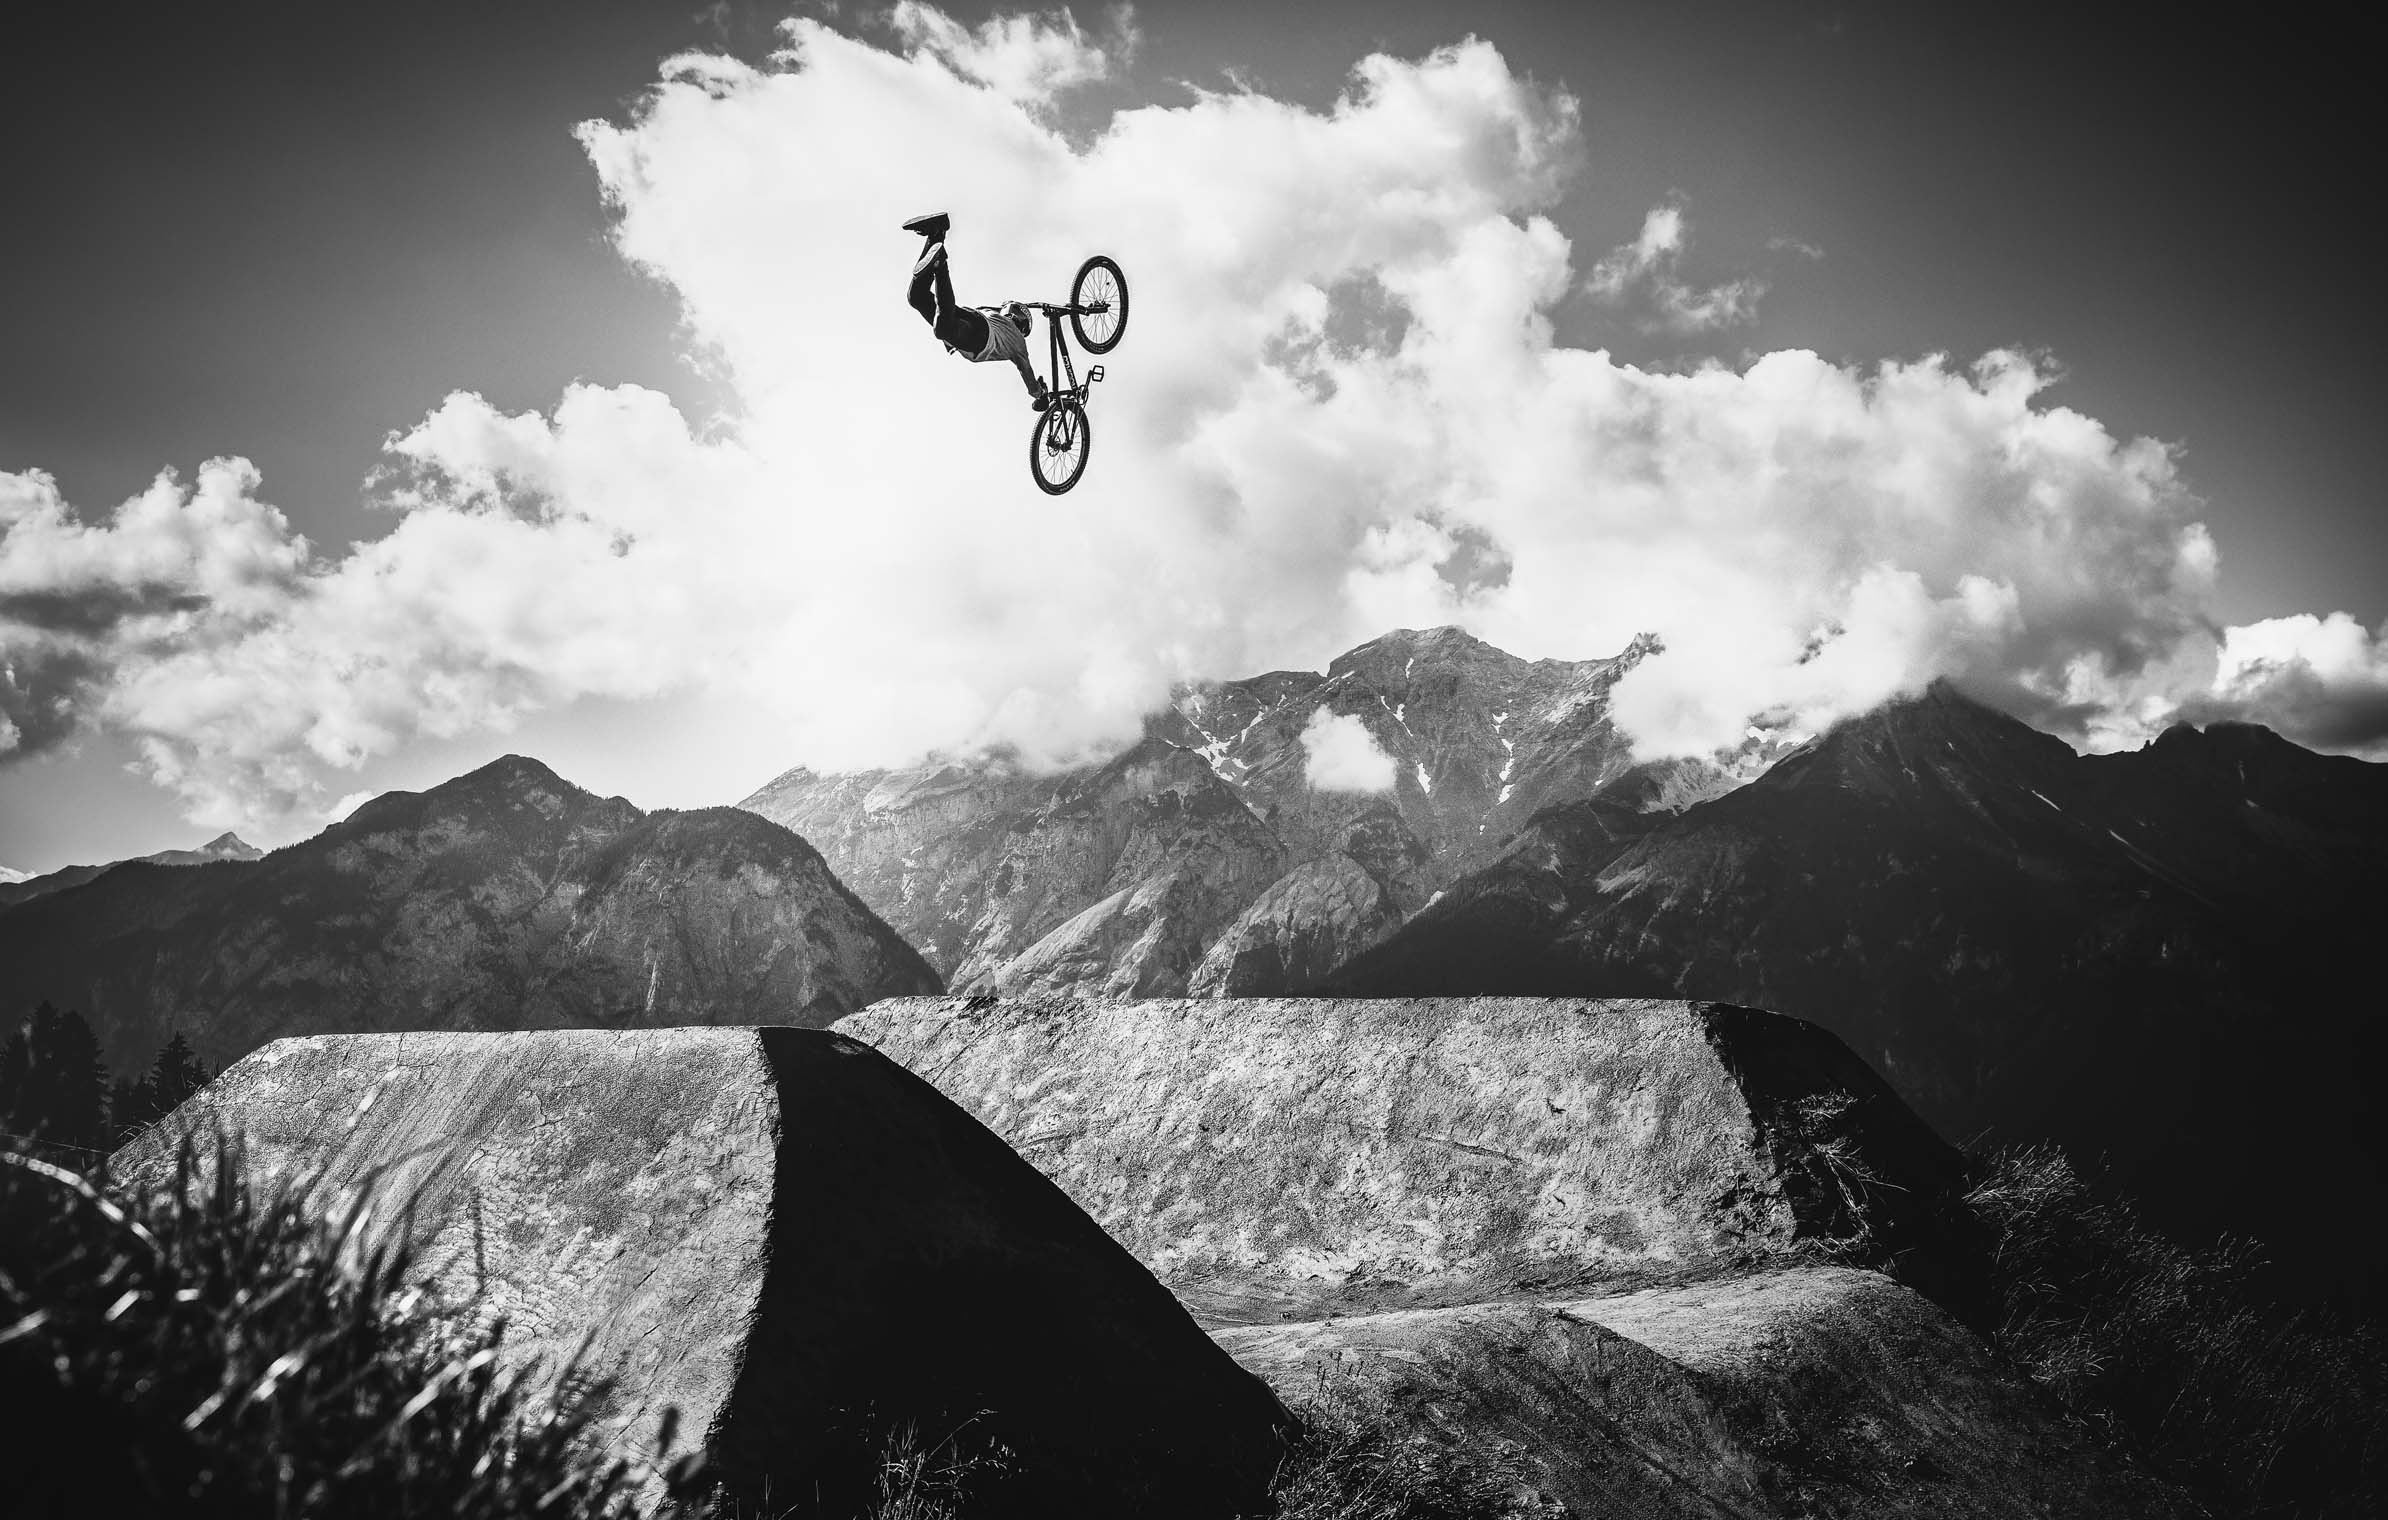 crankworx_Slopestyle_superman_art_jump_mountainbike